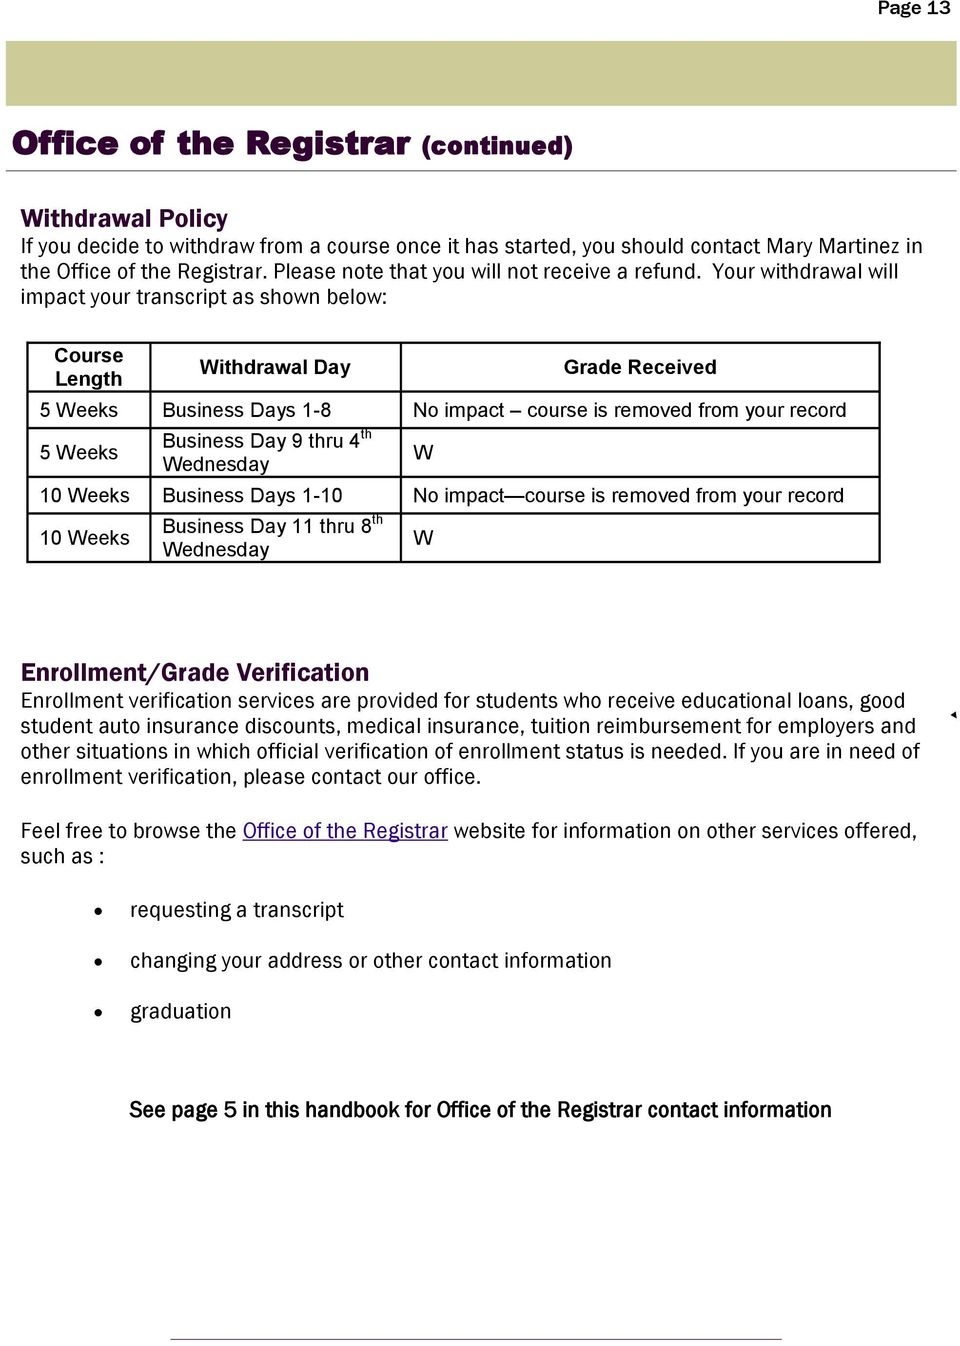 Your withdrawal will impact your transcript as shown below: Course Length Withdrawal Day Grade Received 5 Weeks Business Days 1-8 No impact course is removed from your record 5 Weeks Business Day 9